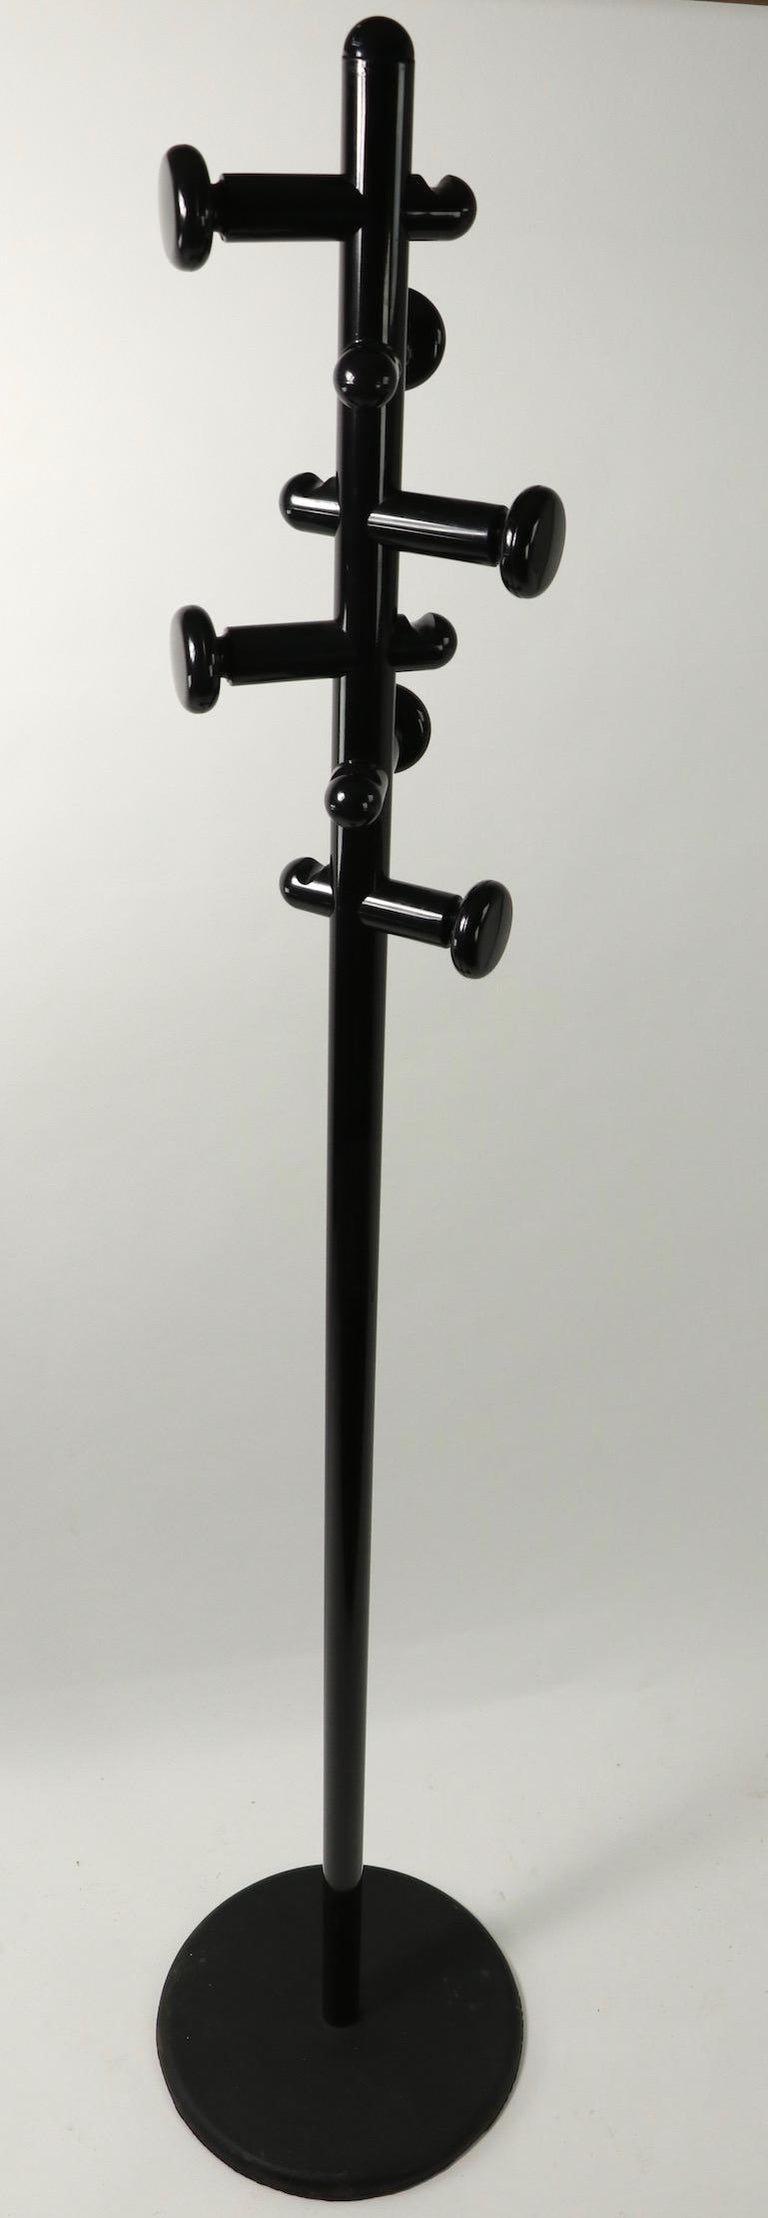 20th Century Post Modernist Italian Black Lacquered Coat Tree Stand For Sale